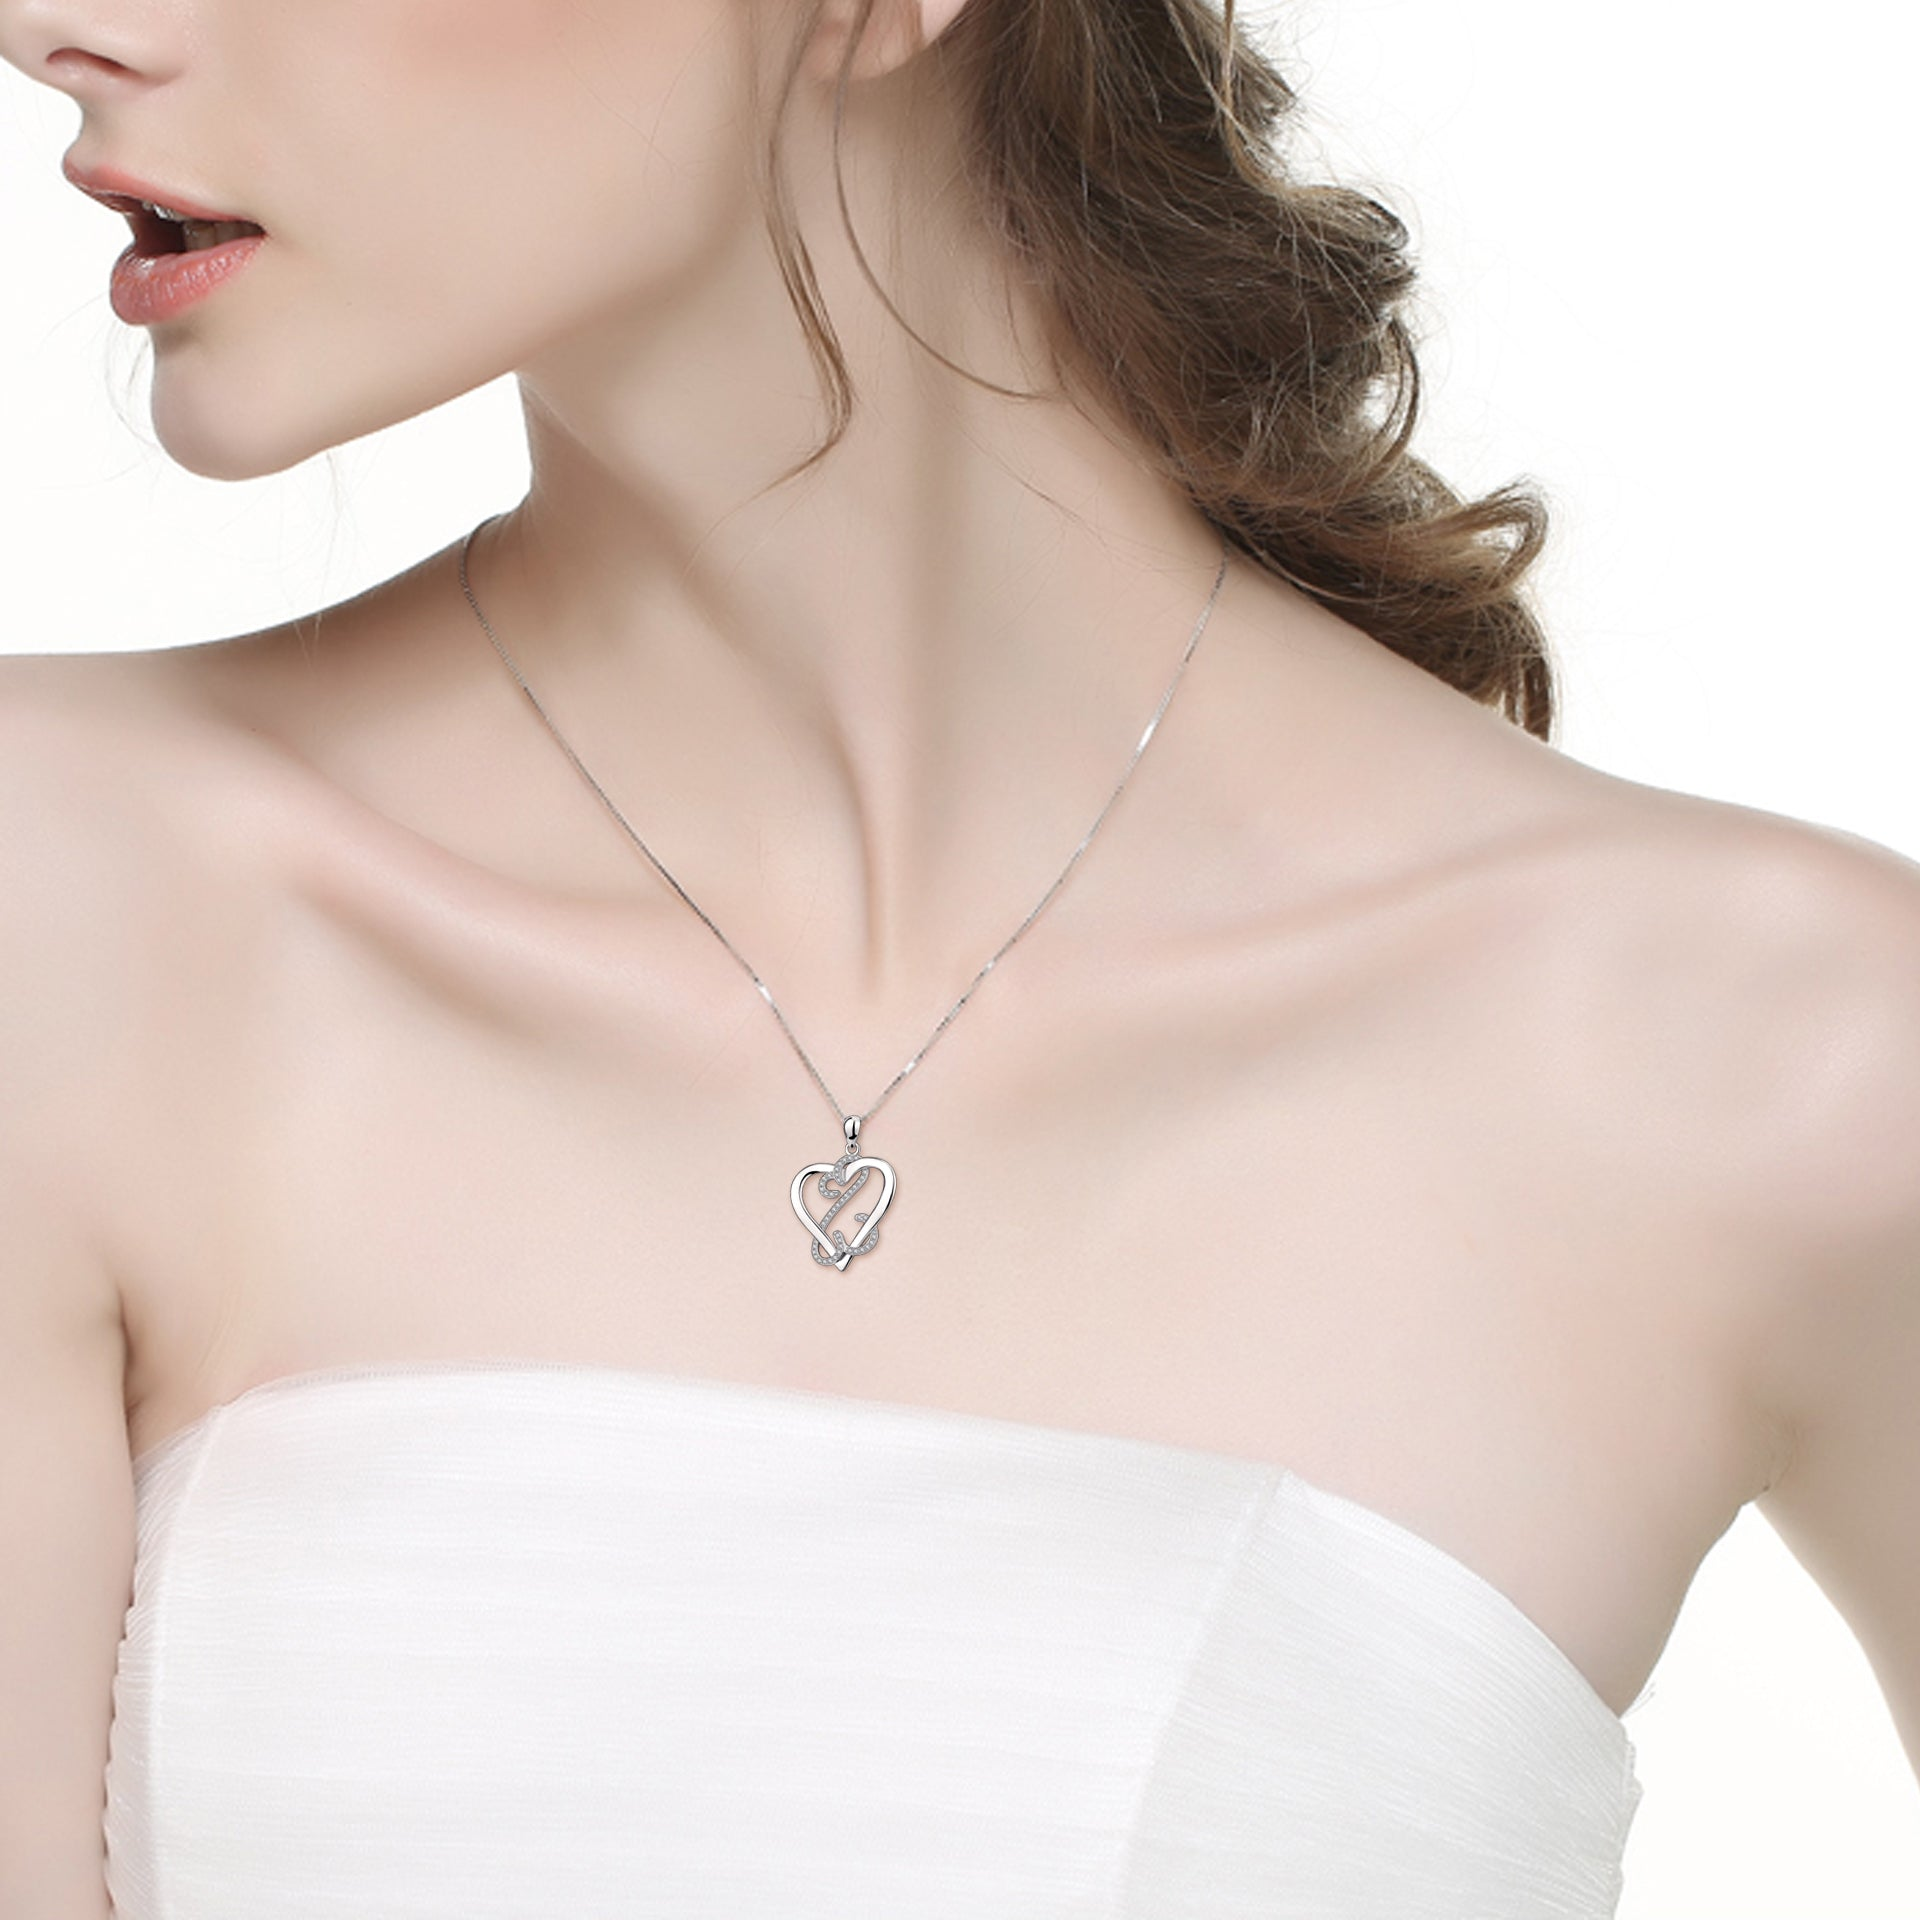 Custom Wholesale Necklace Latest Design Cubic Zircon Charm Sterling Heart Necklace